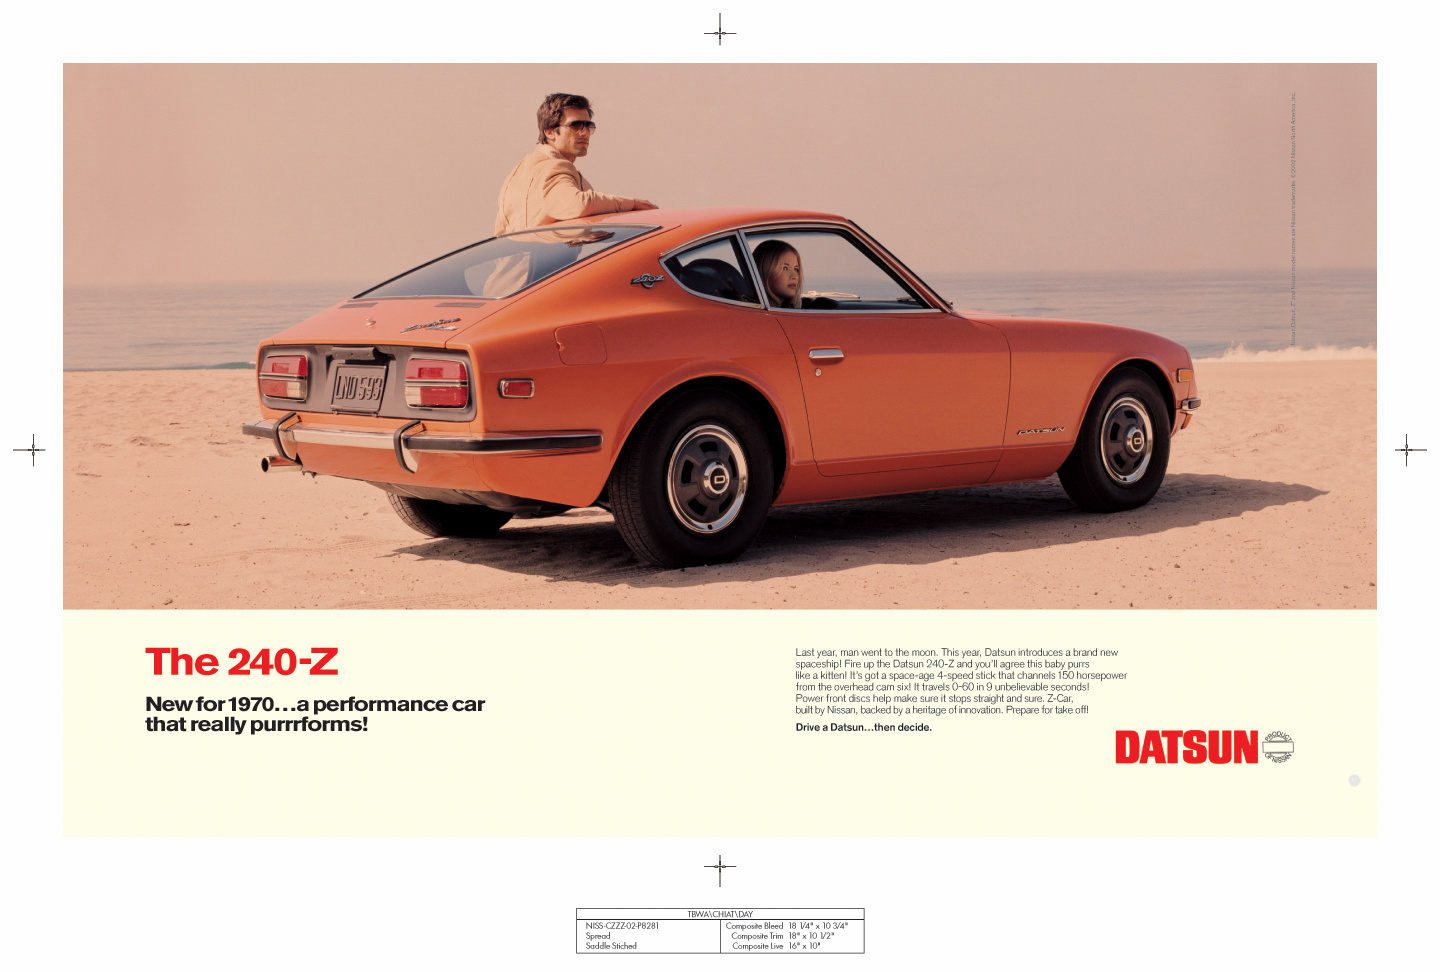 1970 Datsun 240-Z promotional art board in digital form